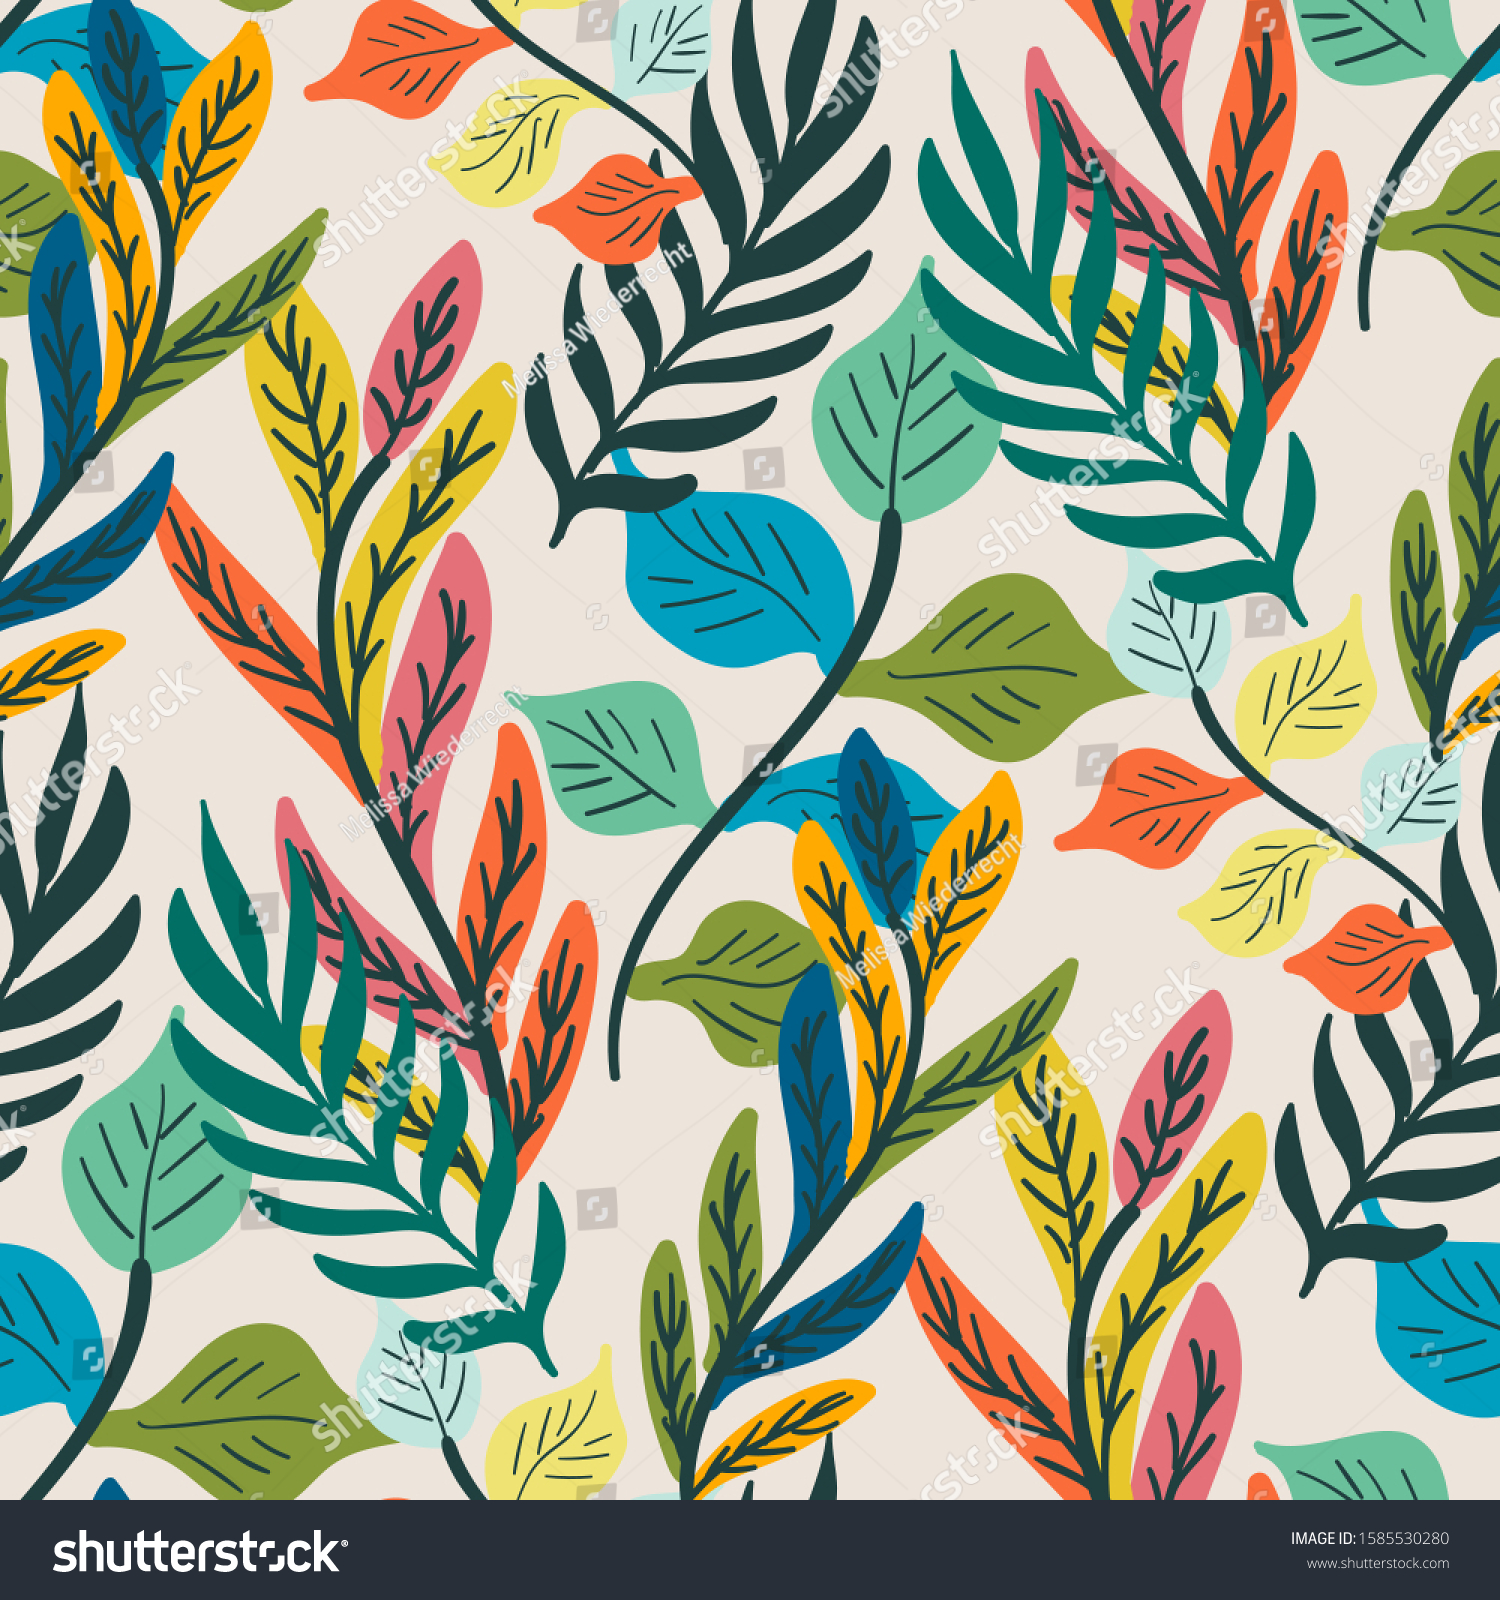 stock-vector-colorful-tropical-leaf-and-